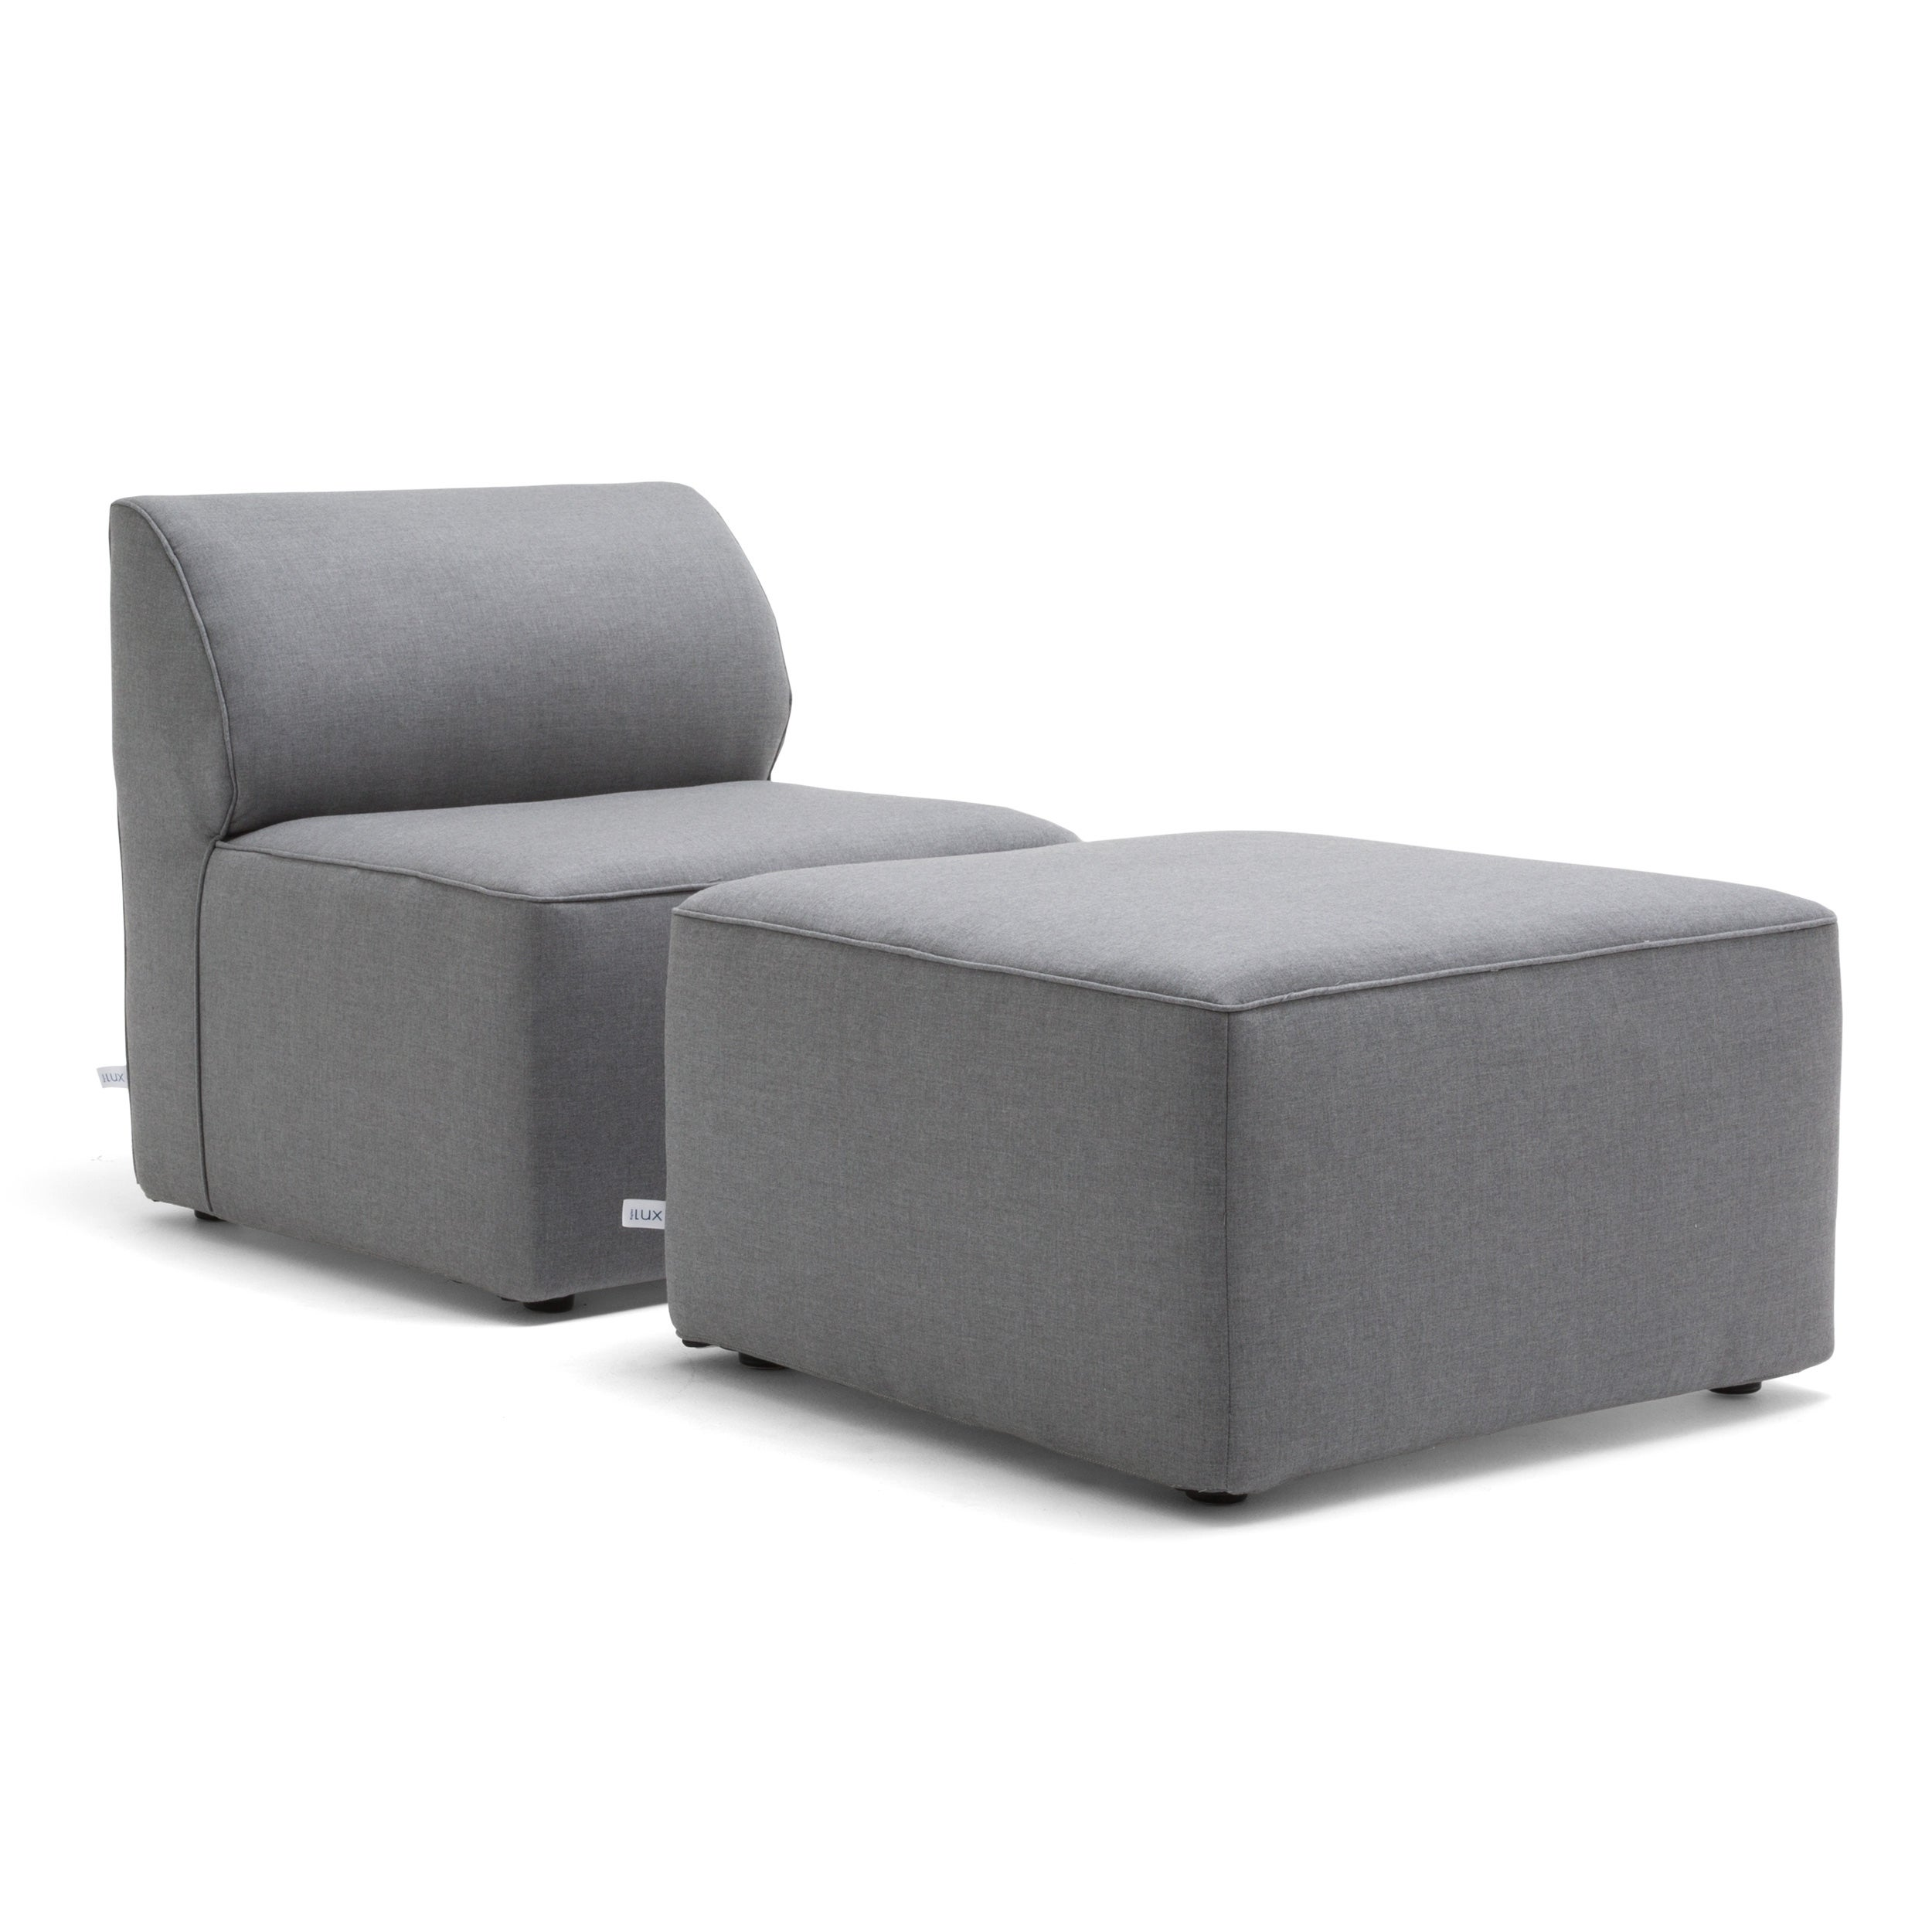 Shop Big Joe Orahh Grey Sunbrella Modular Outdoor Lounge Chair And Ottoman  Set   Free Shipping Today   Overstock.com   20731369